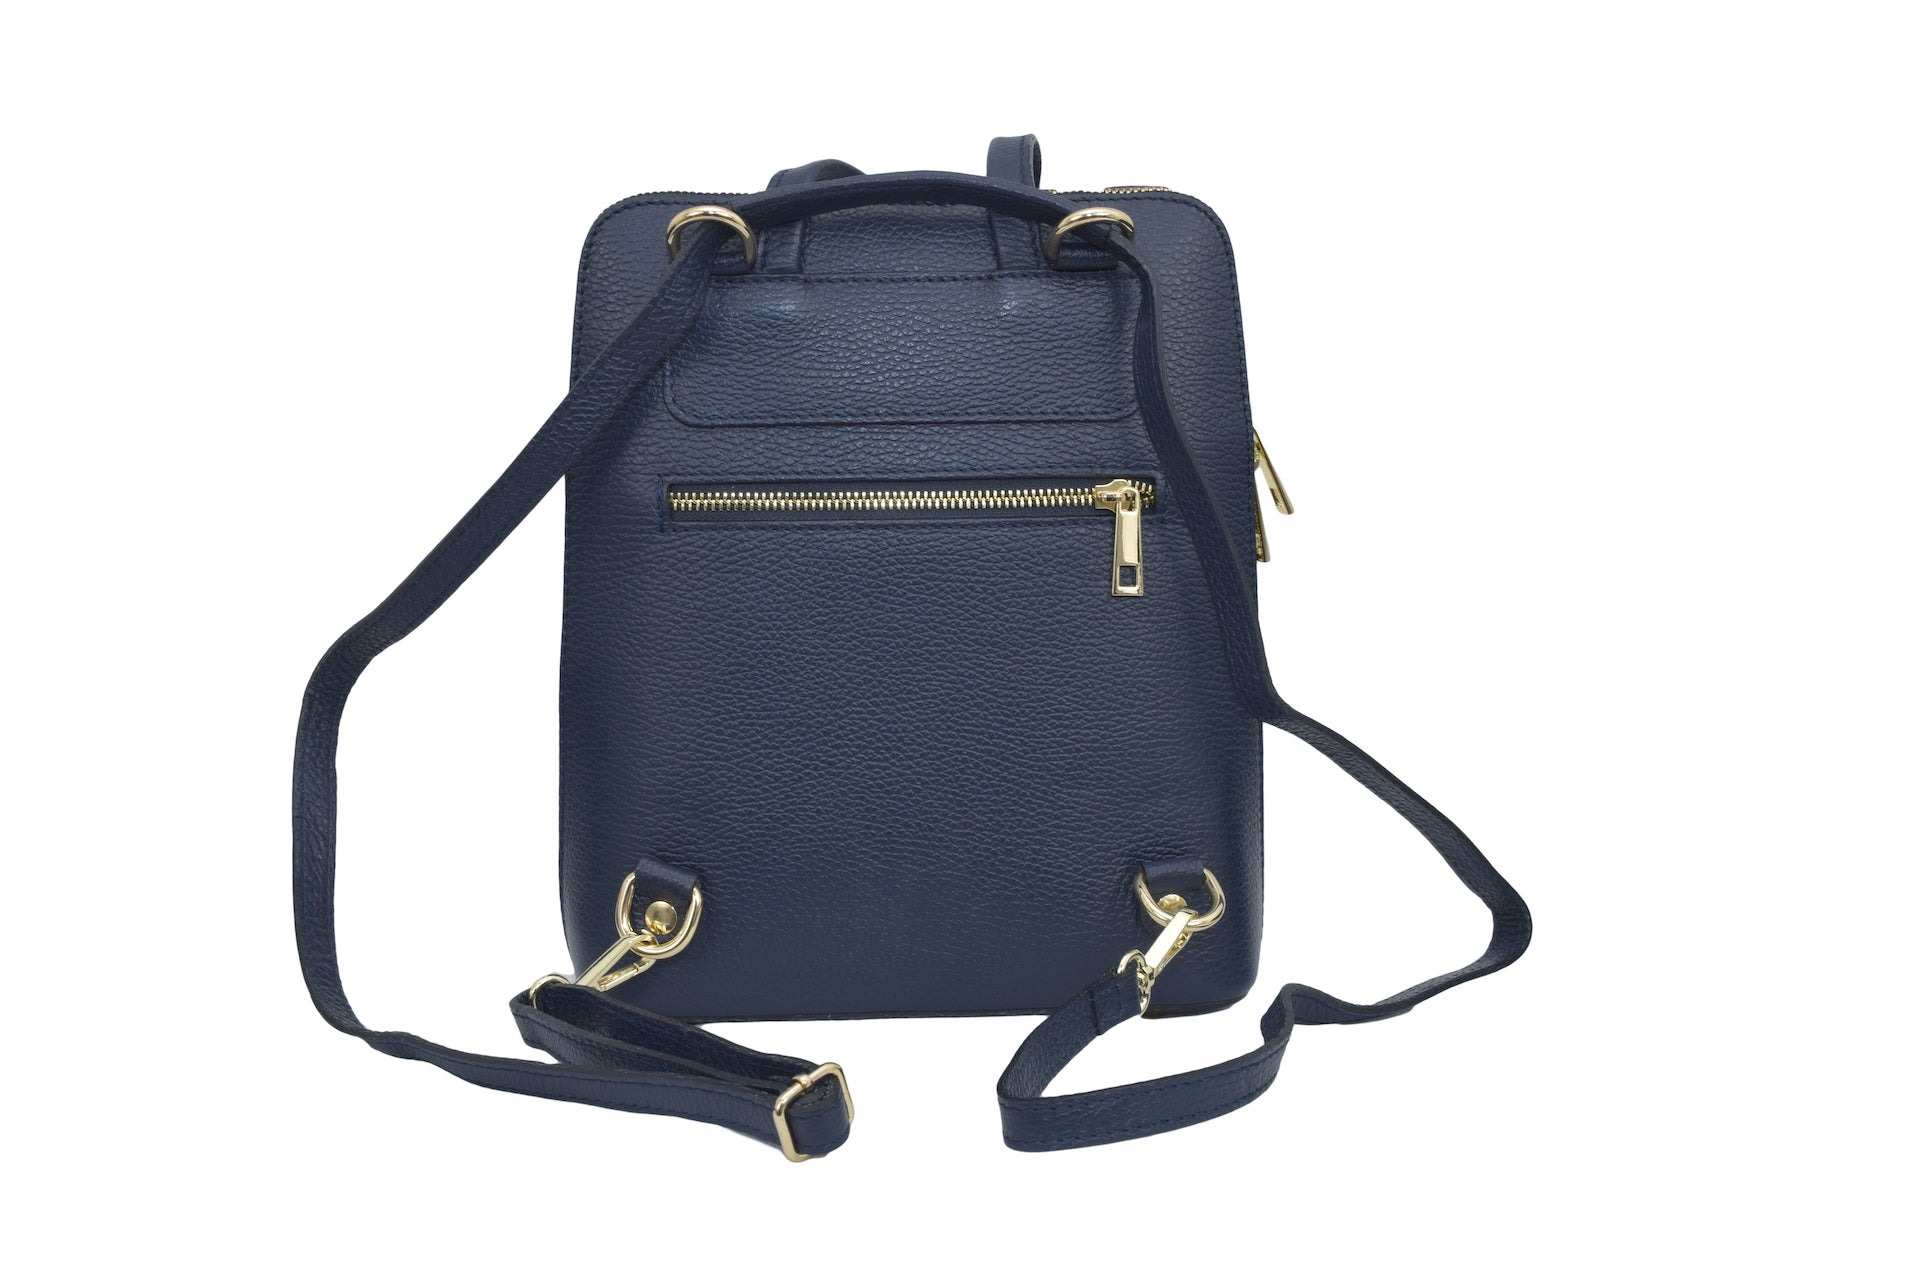 Navy 3 in 1 - backpack / rucksack, cross body bag, and hand bag in one.